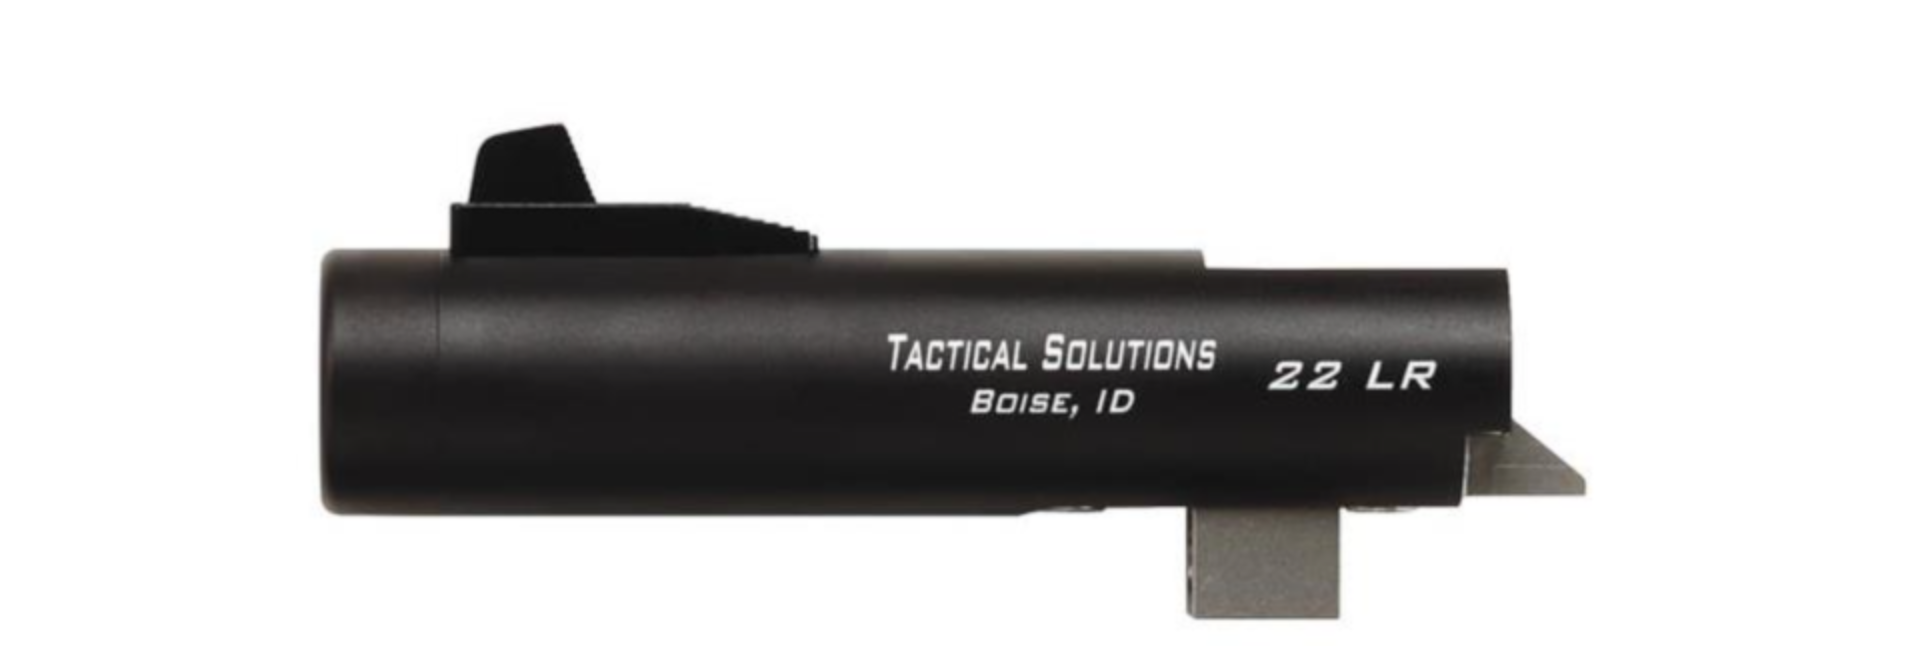 Tactical Solutions Trail-Lite Browning Buck Mark Barrel 4